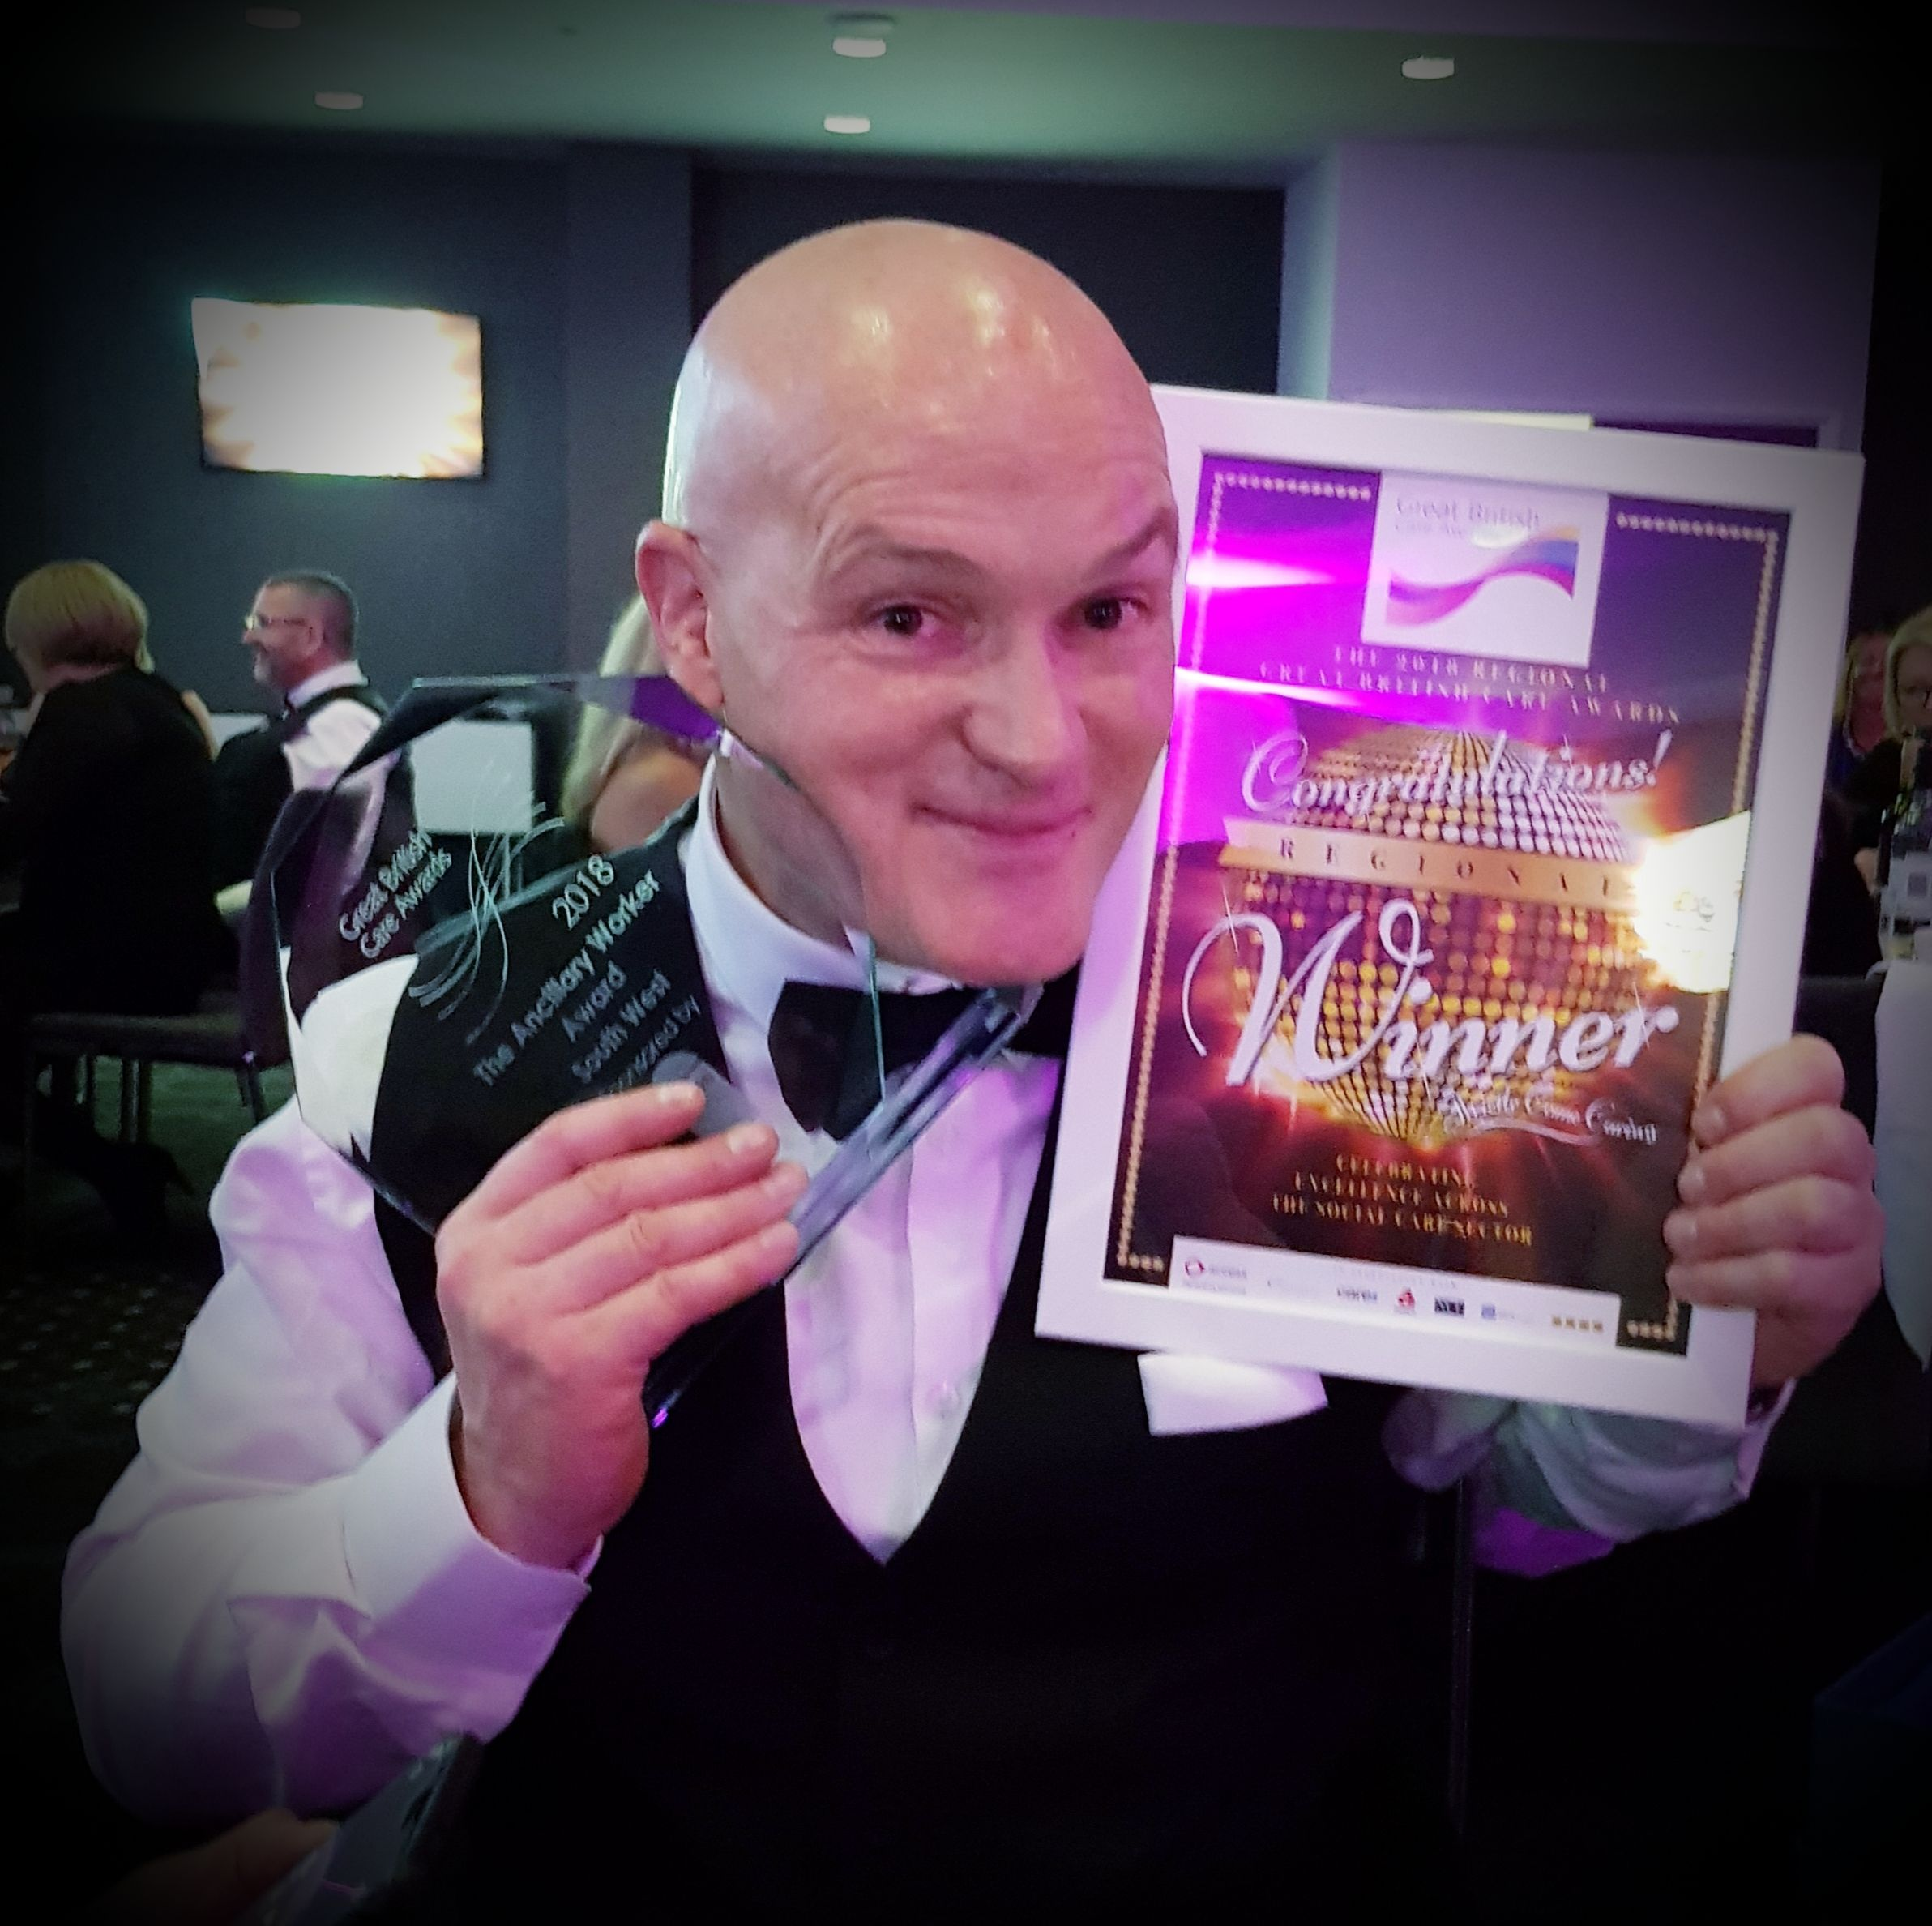 CARER: Andrew Morgan is through to the national finals of the Great British Care Awards